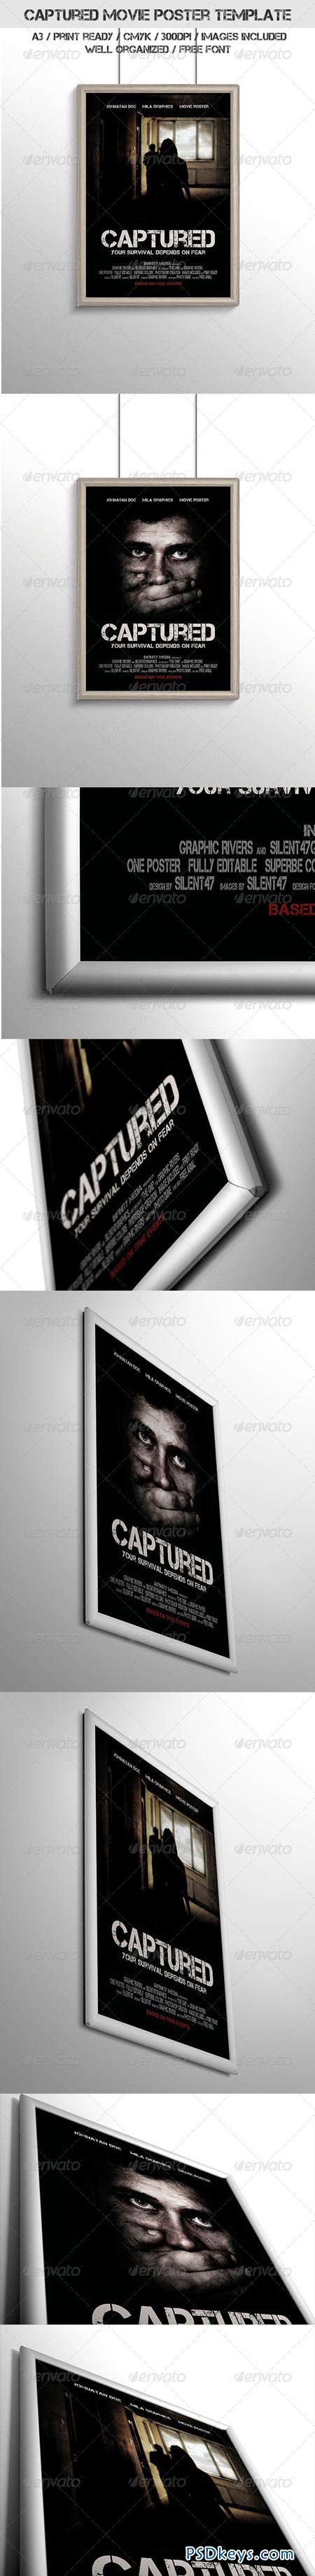 Movie Poster Template Free Download